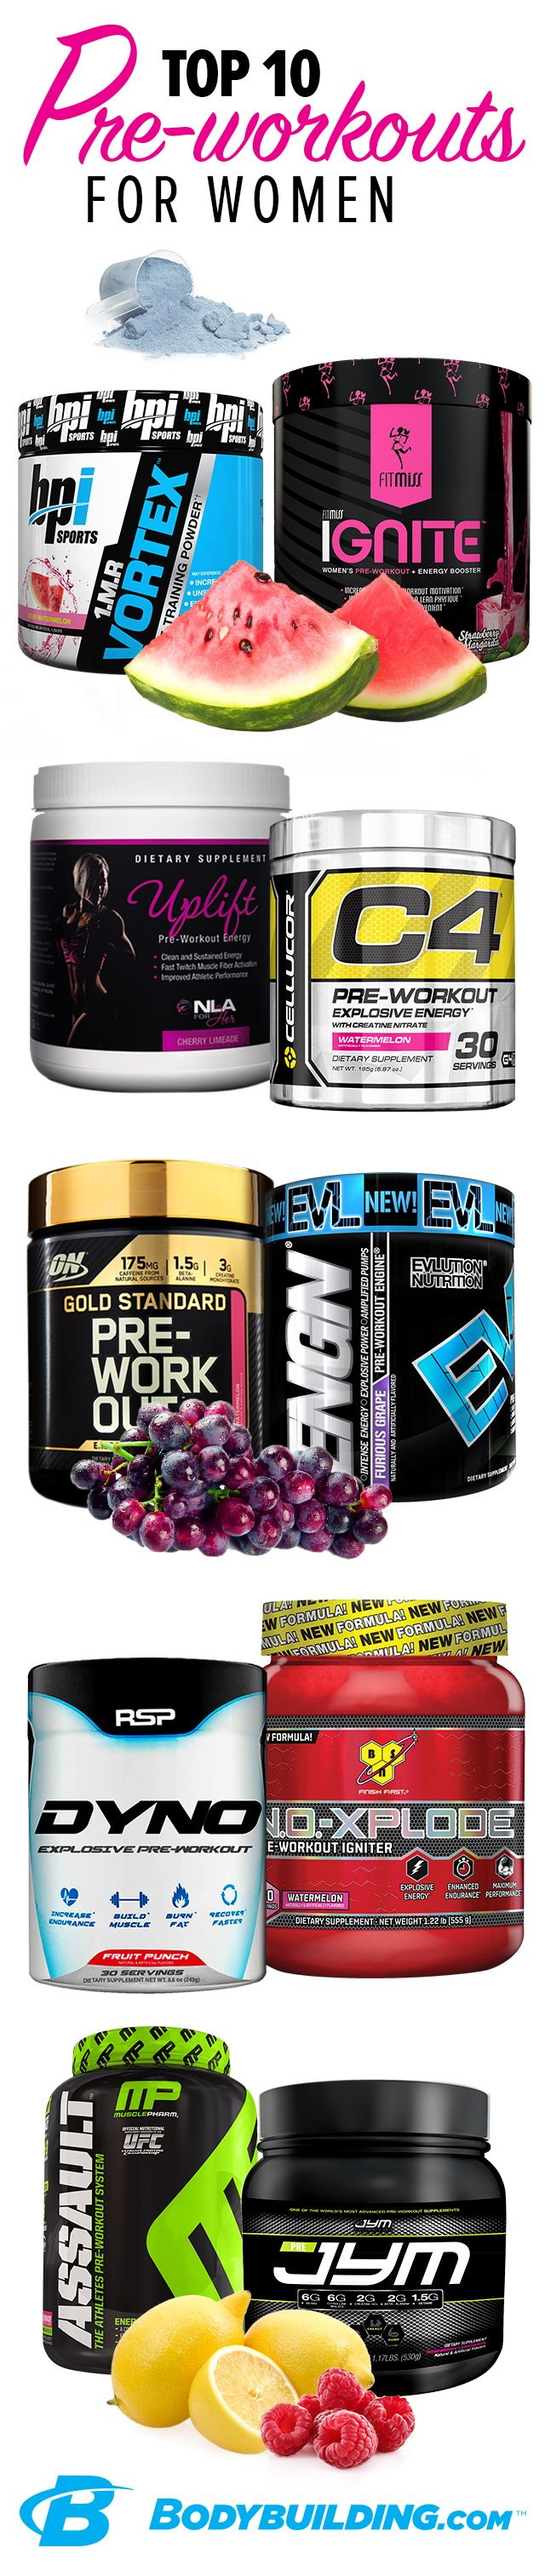 Top 10 Preworkouts for Women! Don't think you have the stamina to squeeze a session into your action-packed day? These pre-workouts have your back. Grab one on your way to the gym—they work fast to fight fatigue and focus your mind. Bodybuilding.com